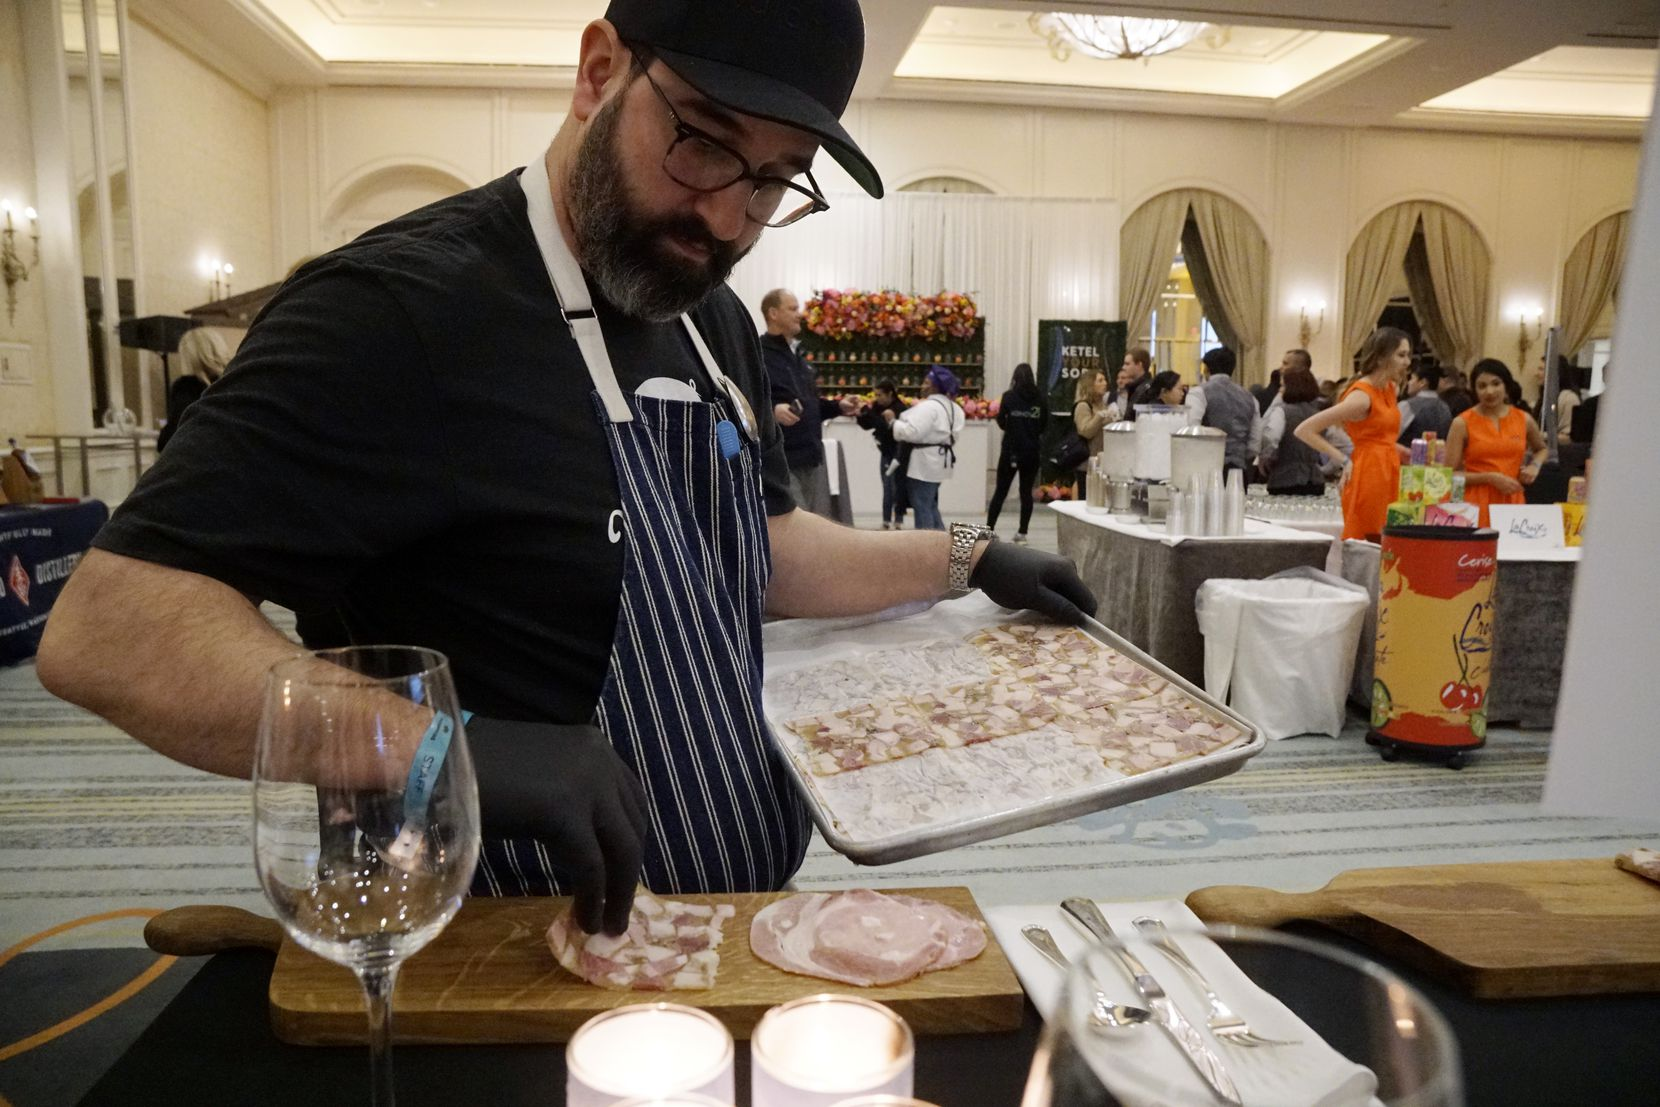 Chef David Uygur adds head cheese to a plate in preparation for the judging at Cochon555 Tour at the Four Seasons Hotel in Irving.